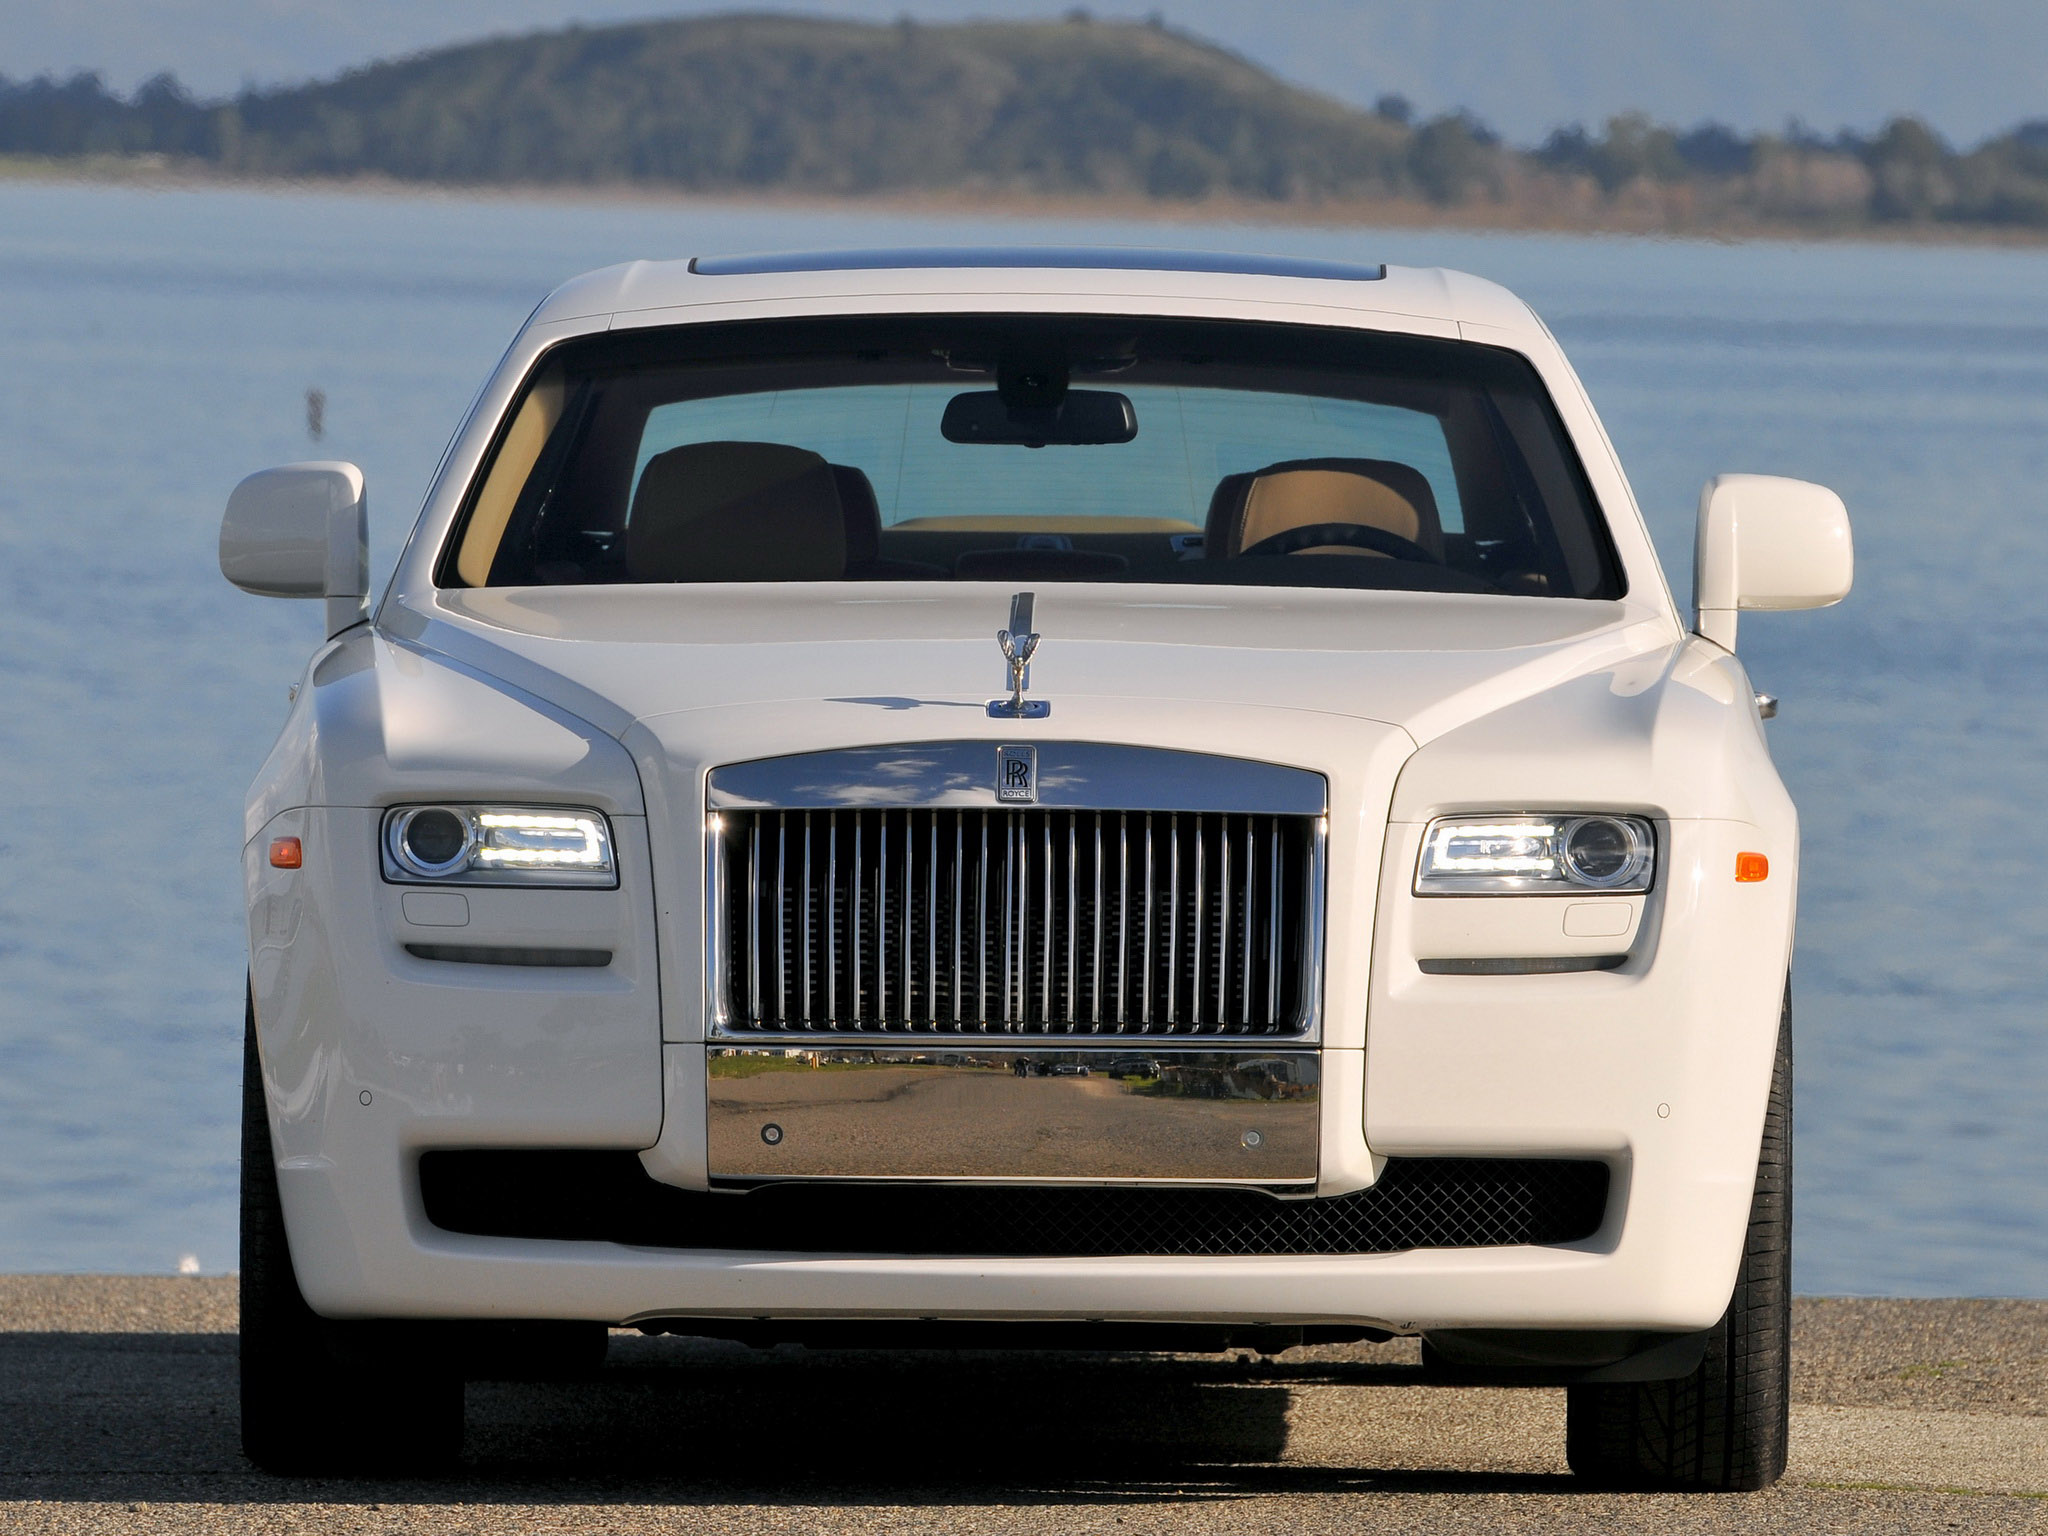 Car in pictures - car photo gallery » Rolls-Royce Ghost ...